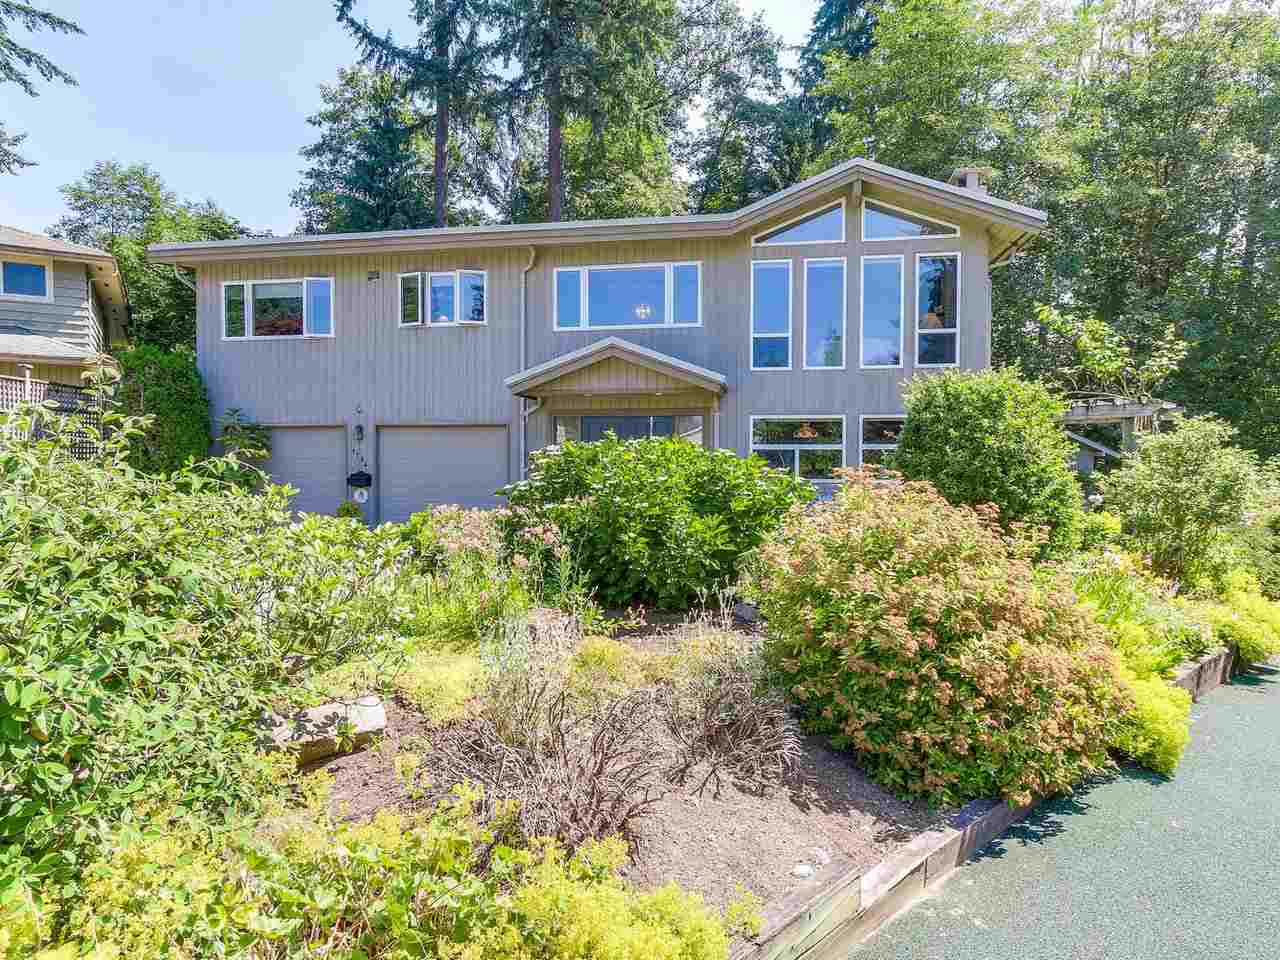 This 4 bedroom, 3 bathroom, renovated, 2740 sq.ft. family home sits on a beautifully landscaped 9,900 sq.ft. East facing cul-de-sac in Blueridge. Updates include: roof, furnace, hot water tank, windows, window coverings, kitchen with S/S appliances. Adjoining the kitchen is a bright family room with French doors leading to the covered deck plus an extended deck to enjoy the sun. Excellent suite potential down with bedroom, laundry, recreation room, and bathroom. 3 car garage(1 tandem and one single). Shed in the Backyard with electrical supply (could be play house , garden shed or man cave). Close to schools, parks, trails, Capilano Univ., and shopping.